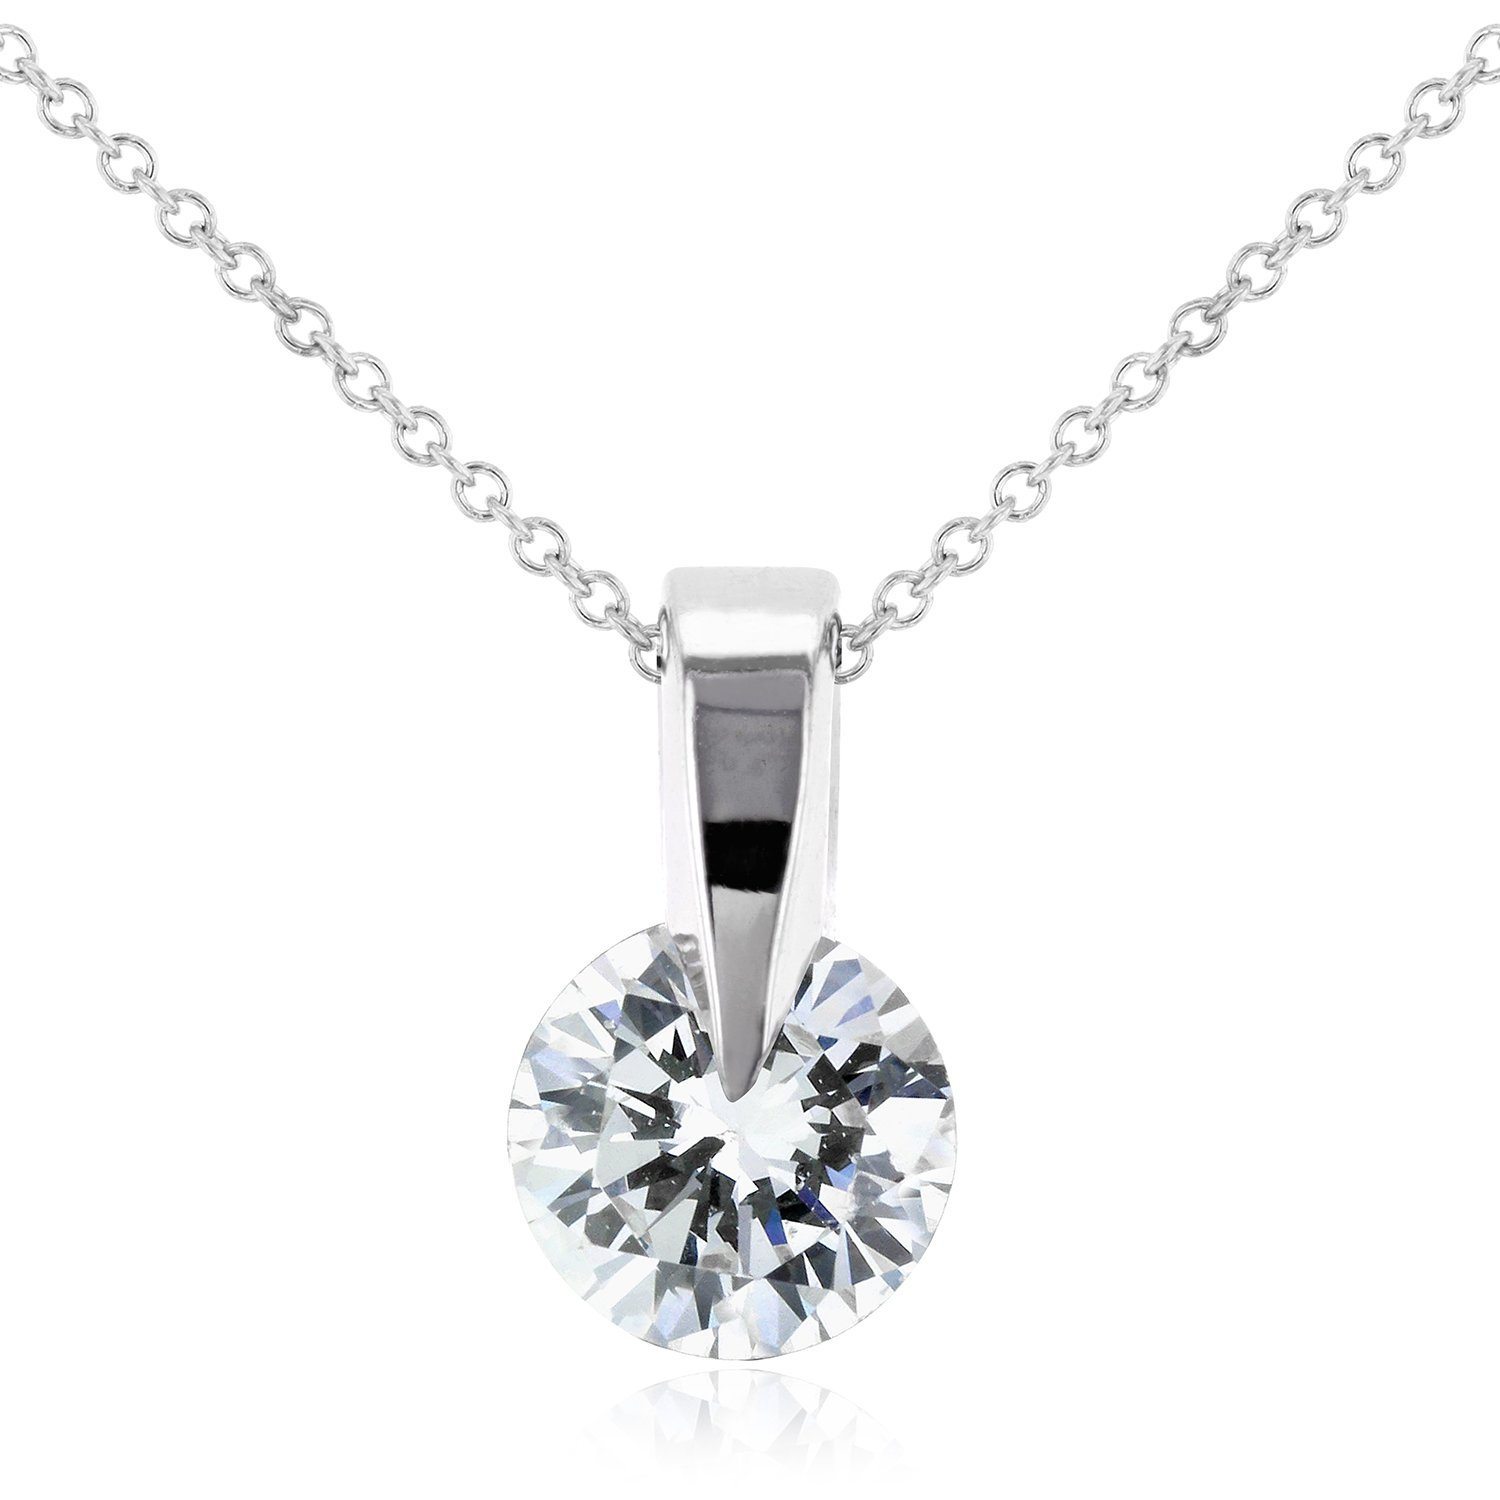 brilliant gold white johnlewis necklace mogul at diamond solitaire pdp pendant online round main buymogul rsp